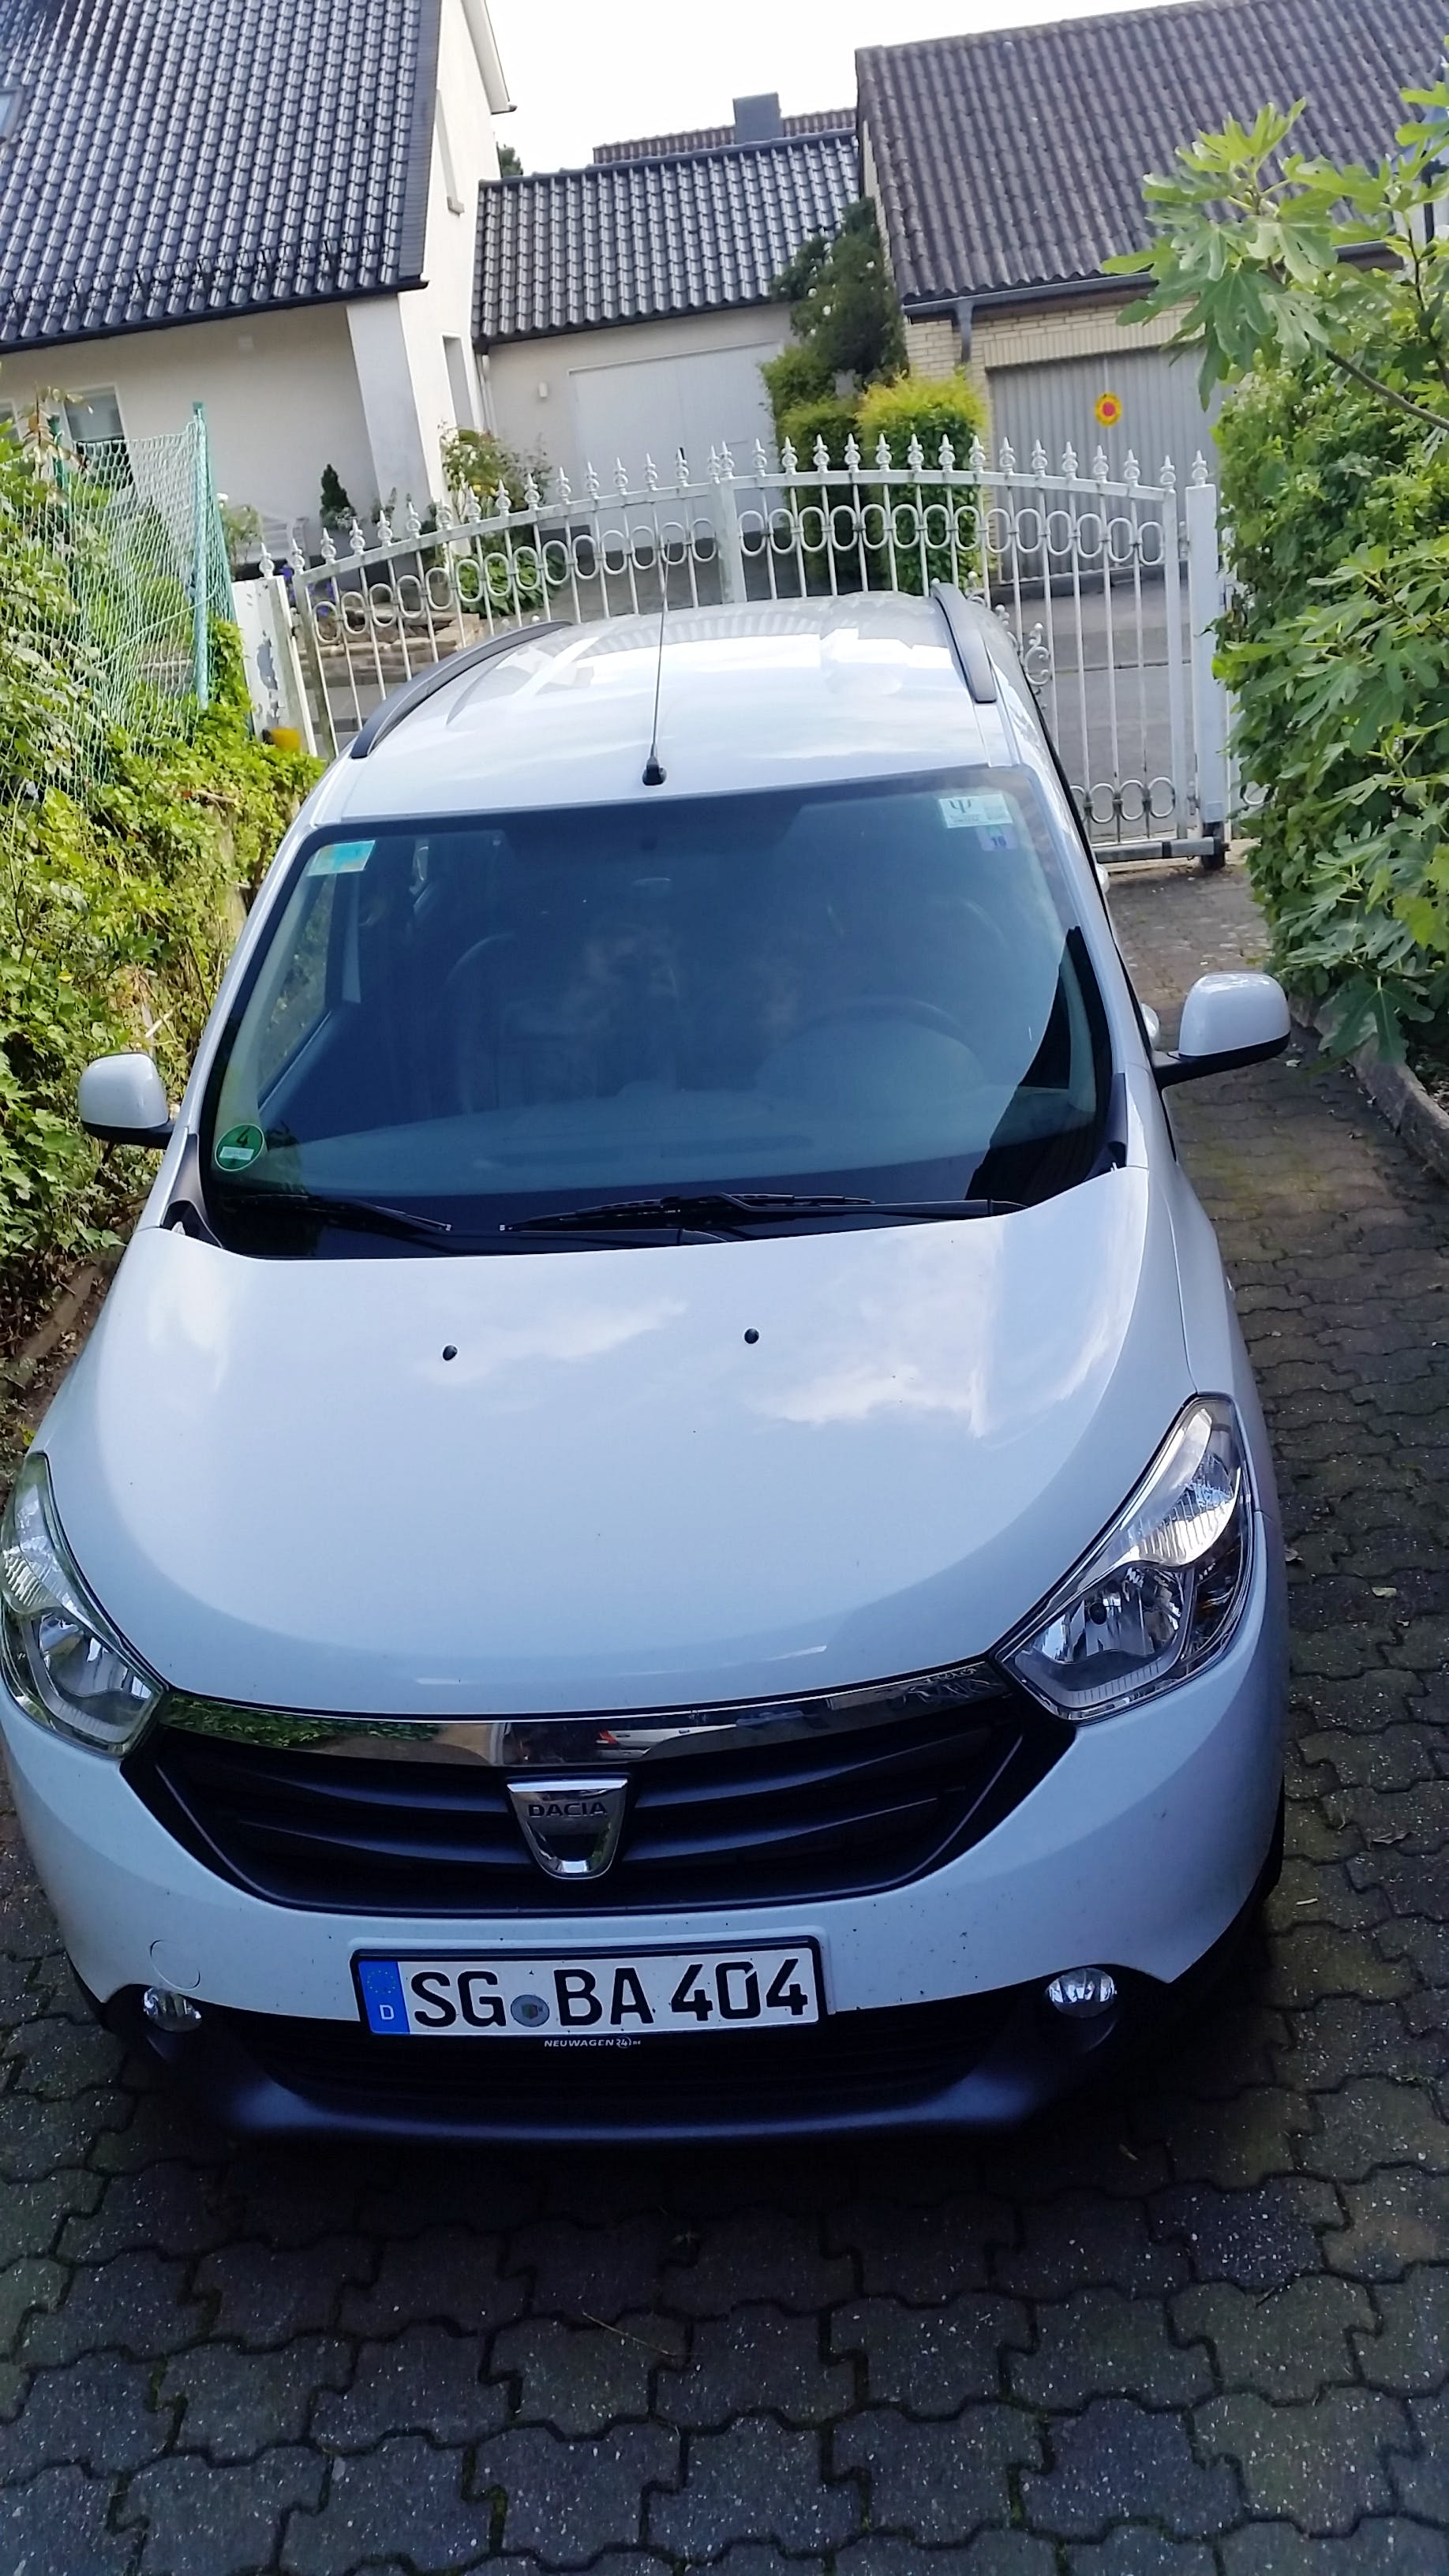 Dacia Lodgy dCi 90 eco, 2015, Diesel